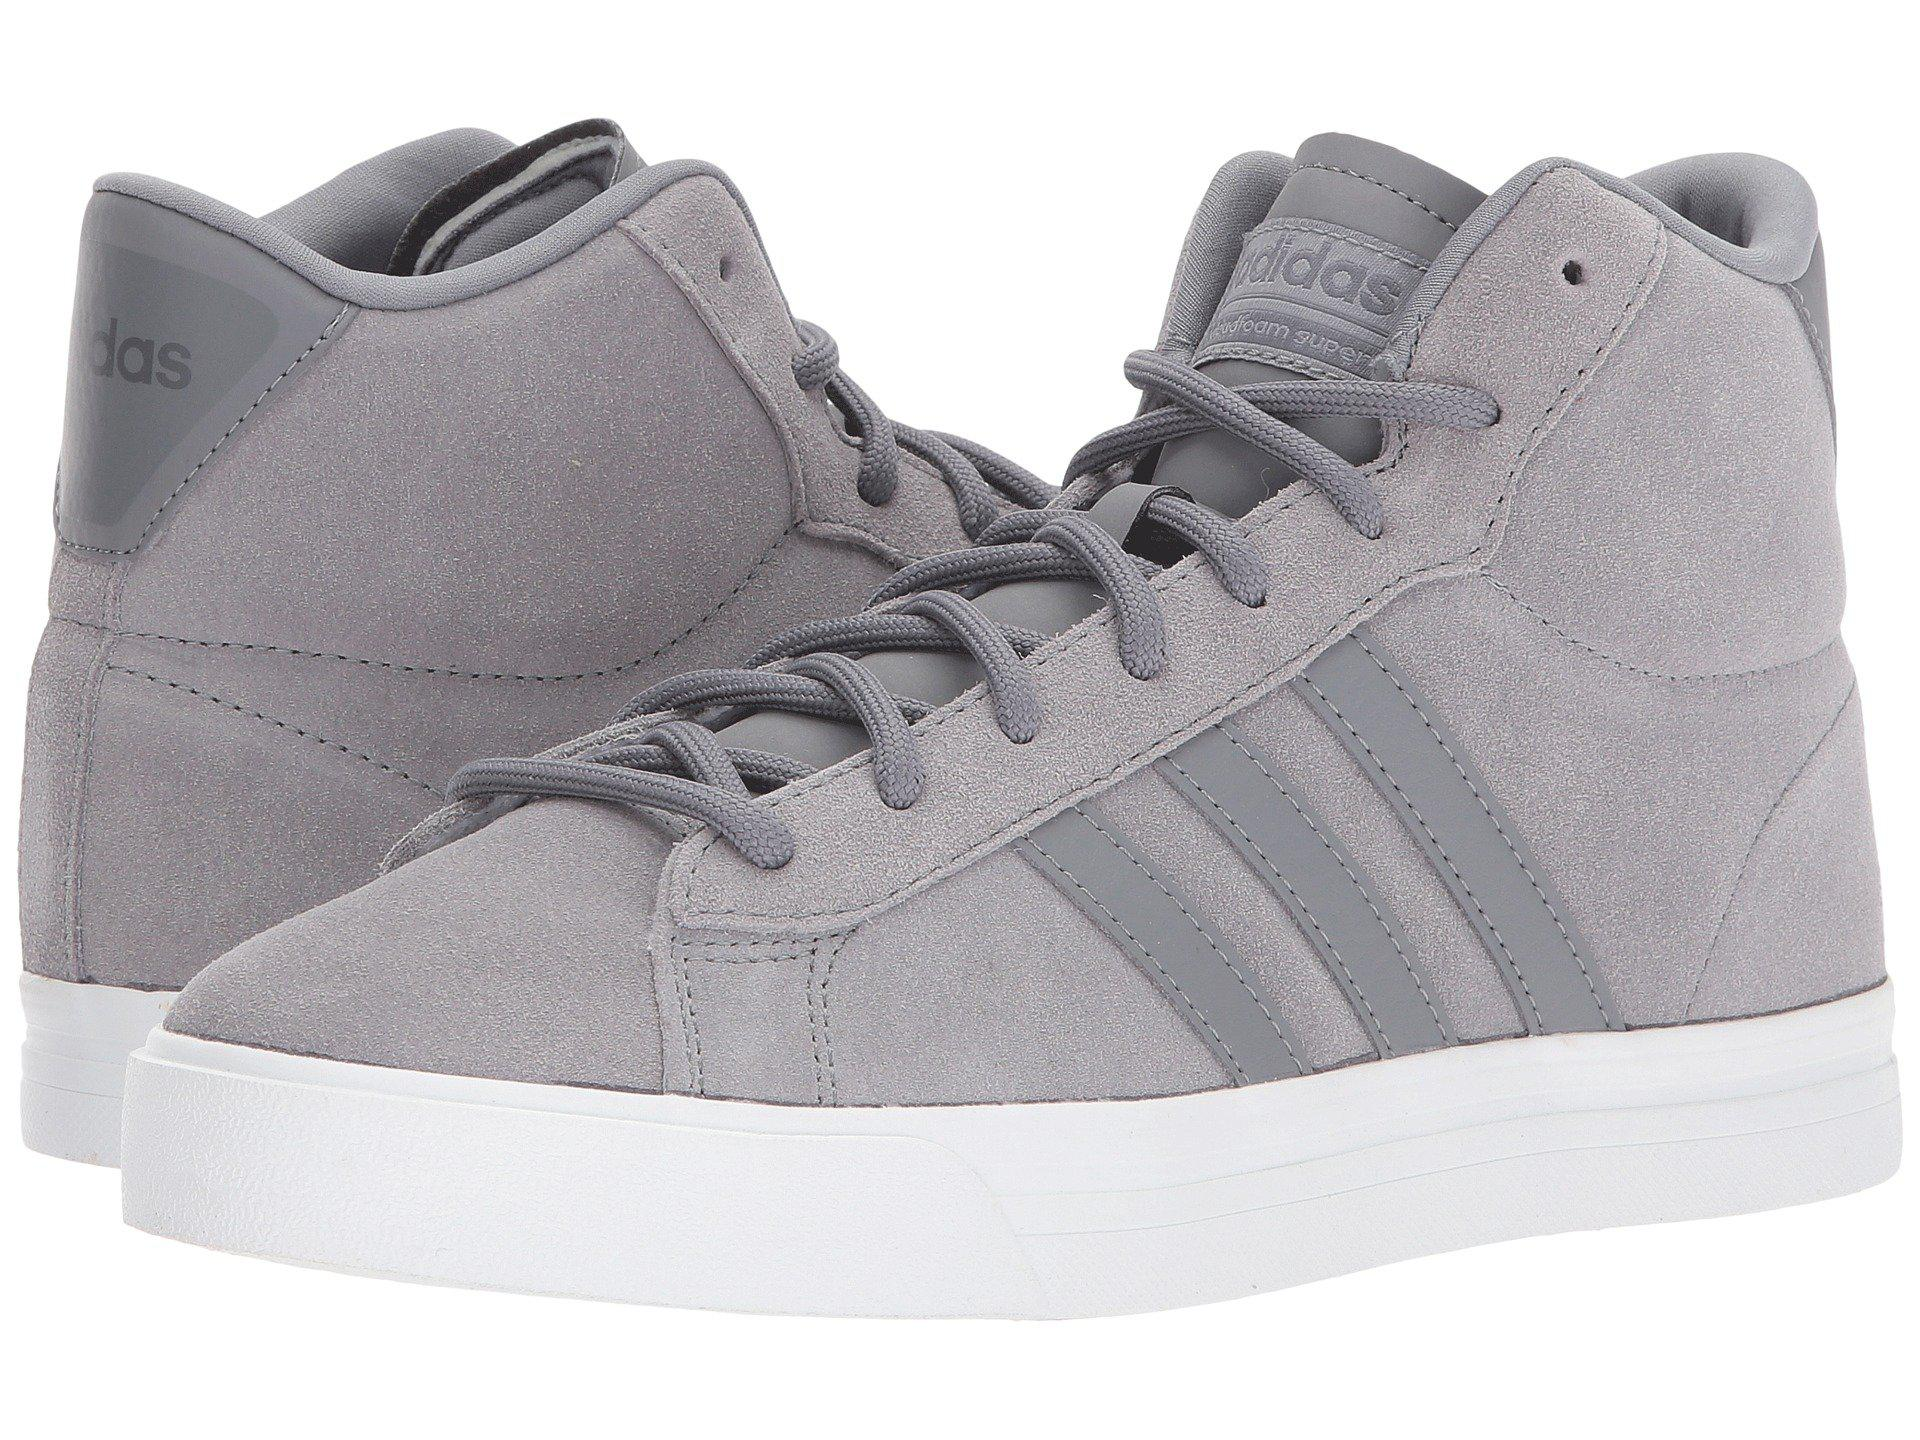 1f389dbc843890 Lyst - adidas Cloudfoam Super Daily Mid in Gray for Men